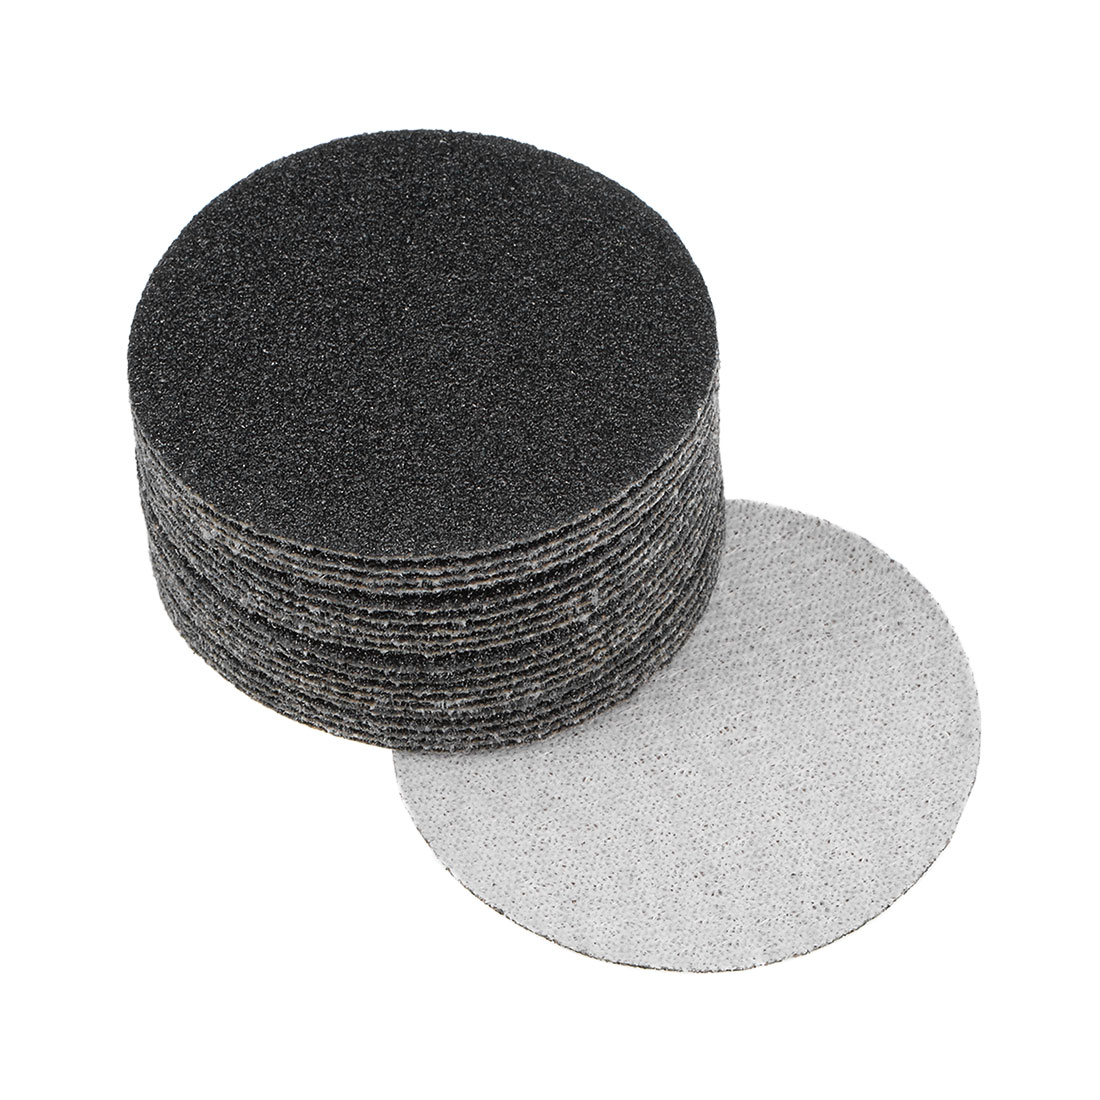 2 inch Wet Dry Discs 80 Grit Hook and Loop Sanding Disc Silicon Carbide 20pcs